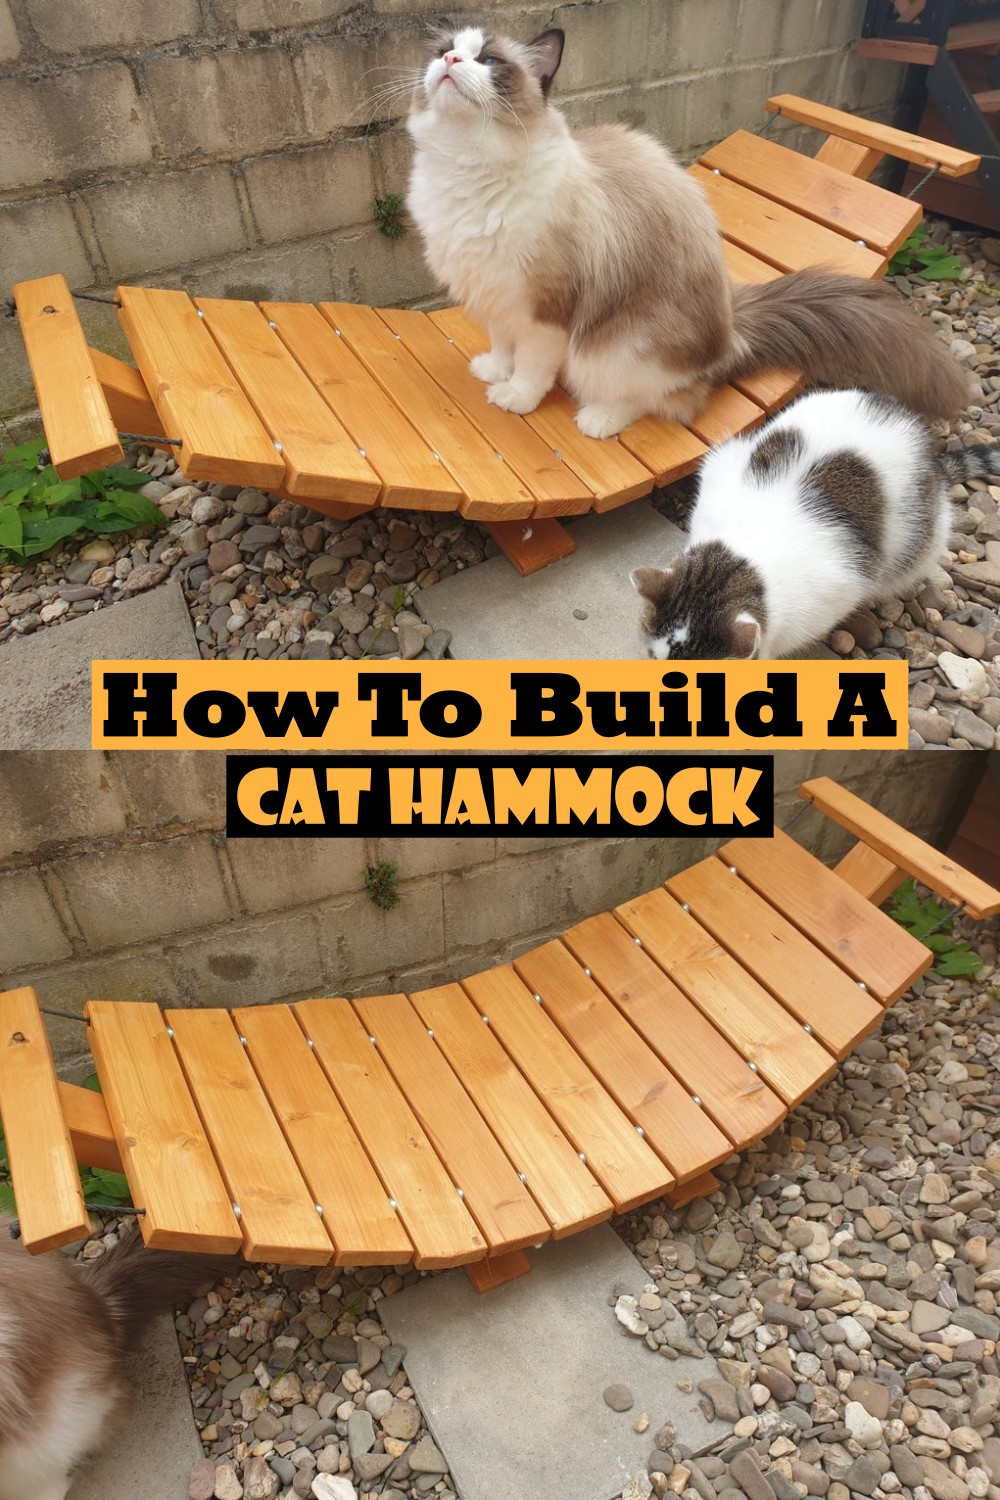 How To Build A Cat Hammock